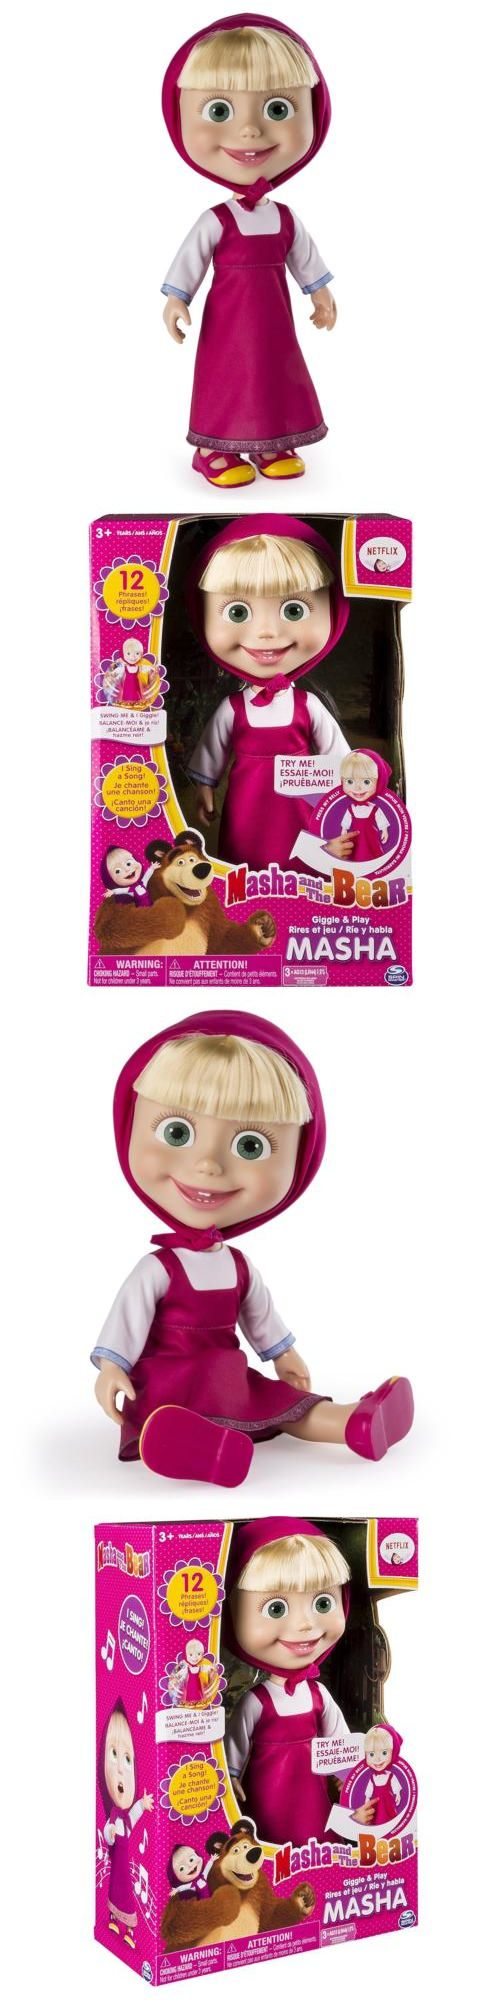 """Dolls And Bears: Masha And The Bear - 12"""" Giggle And Play Masha - Interactive Doll -> BUY IT NOW ONLY: $19.71 on eBay!"""